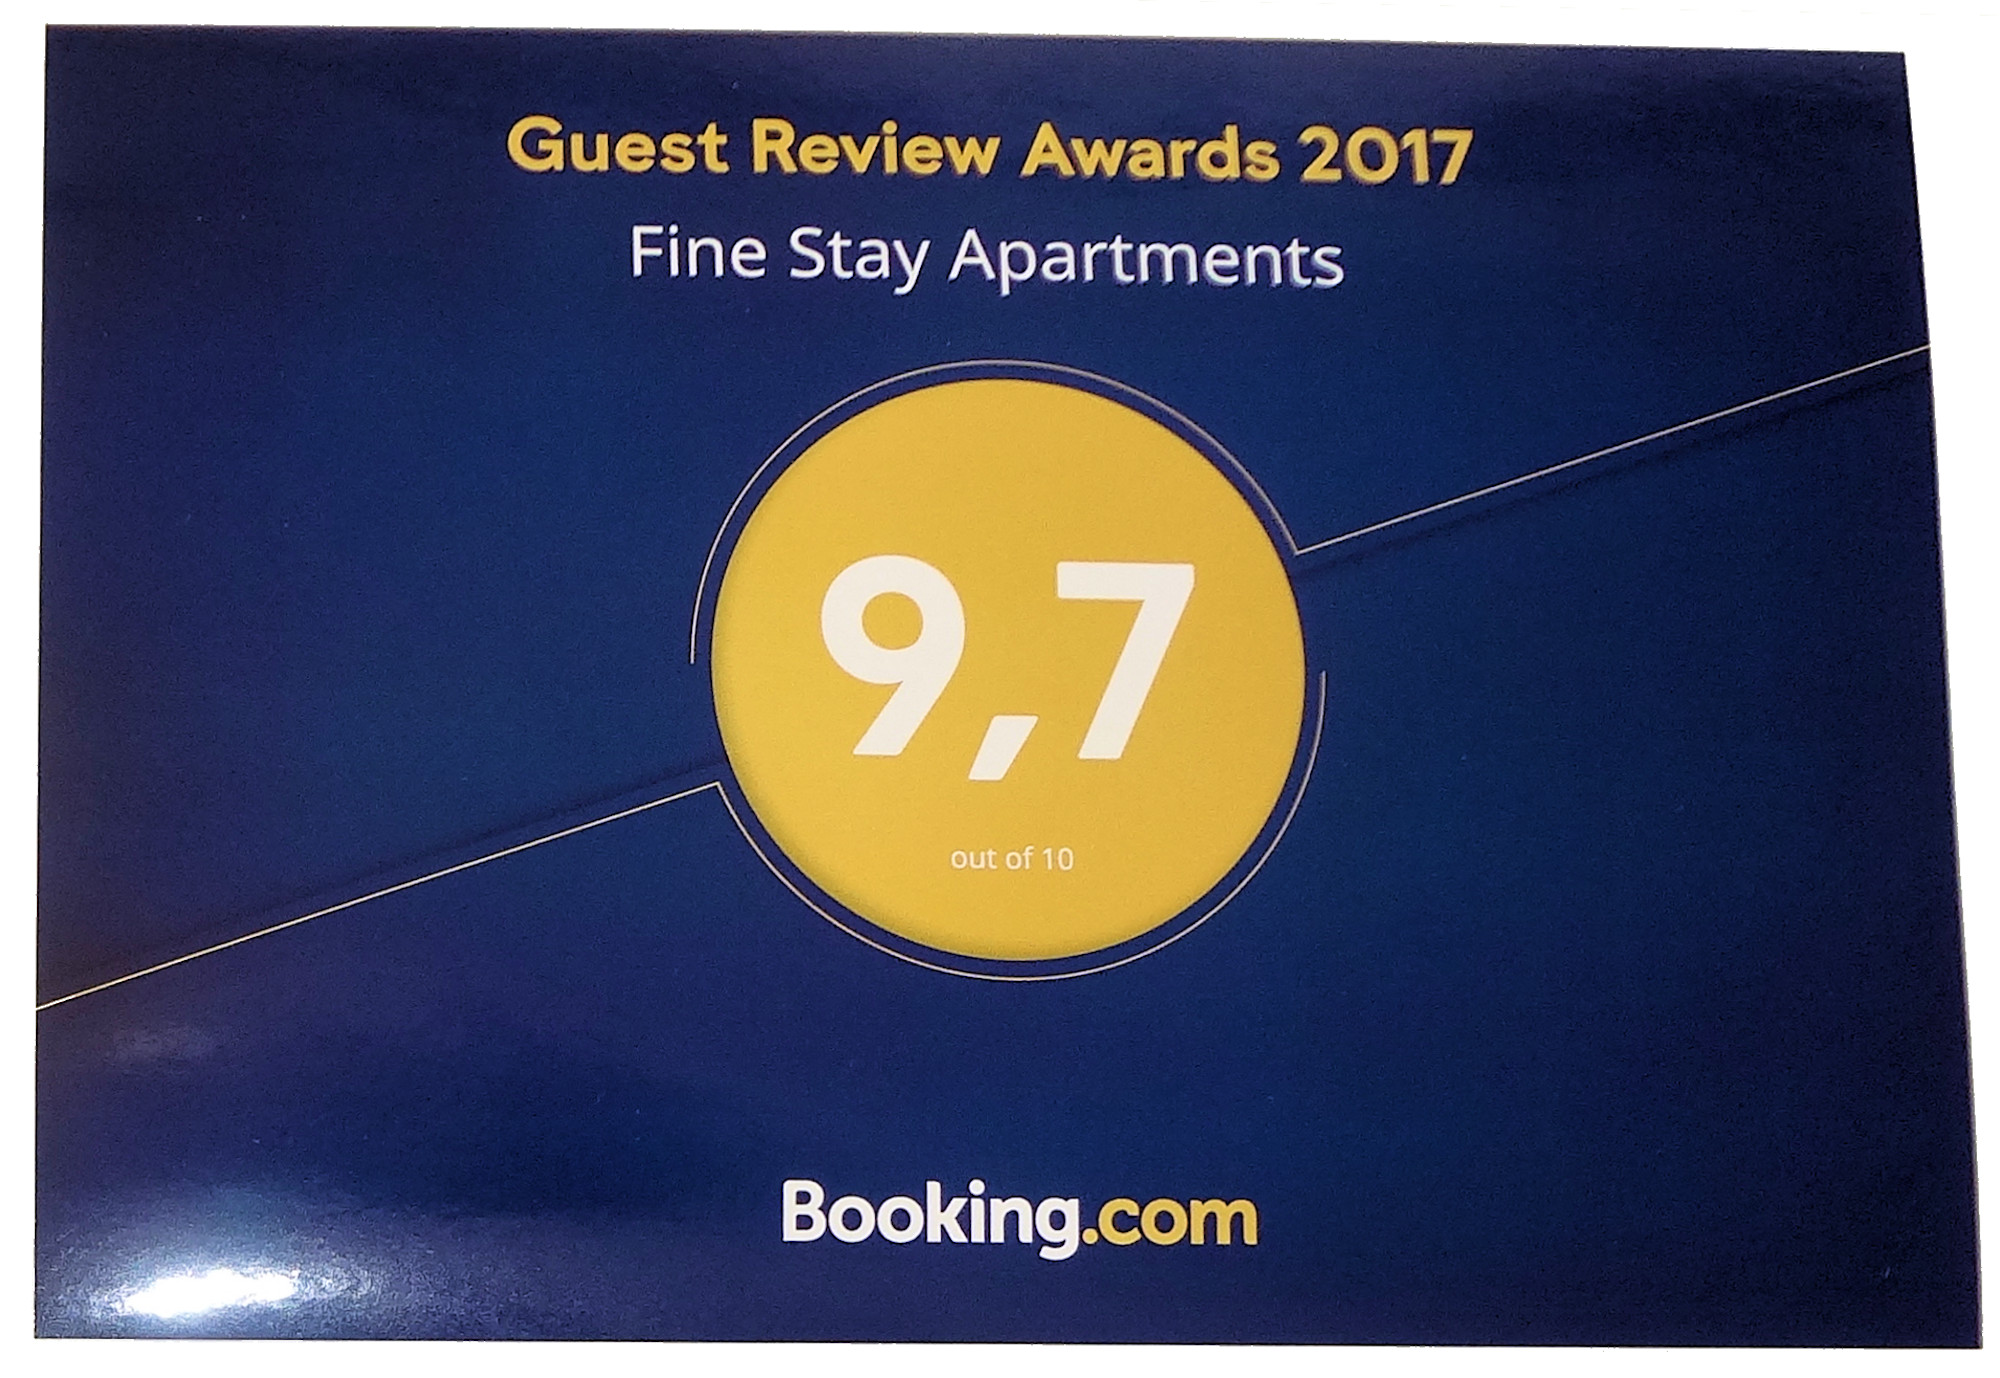 Booking Accommodations Cost Best Buy